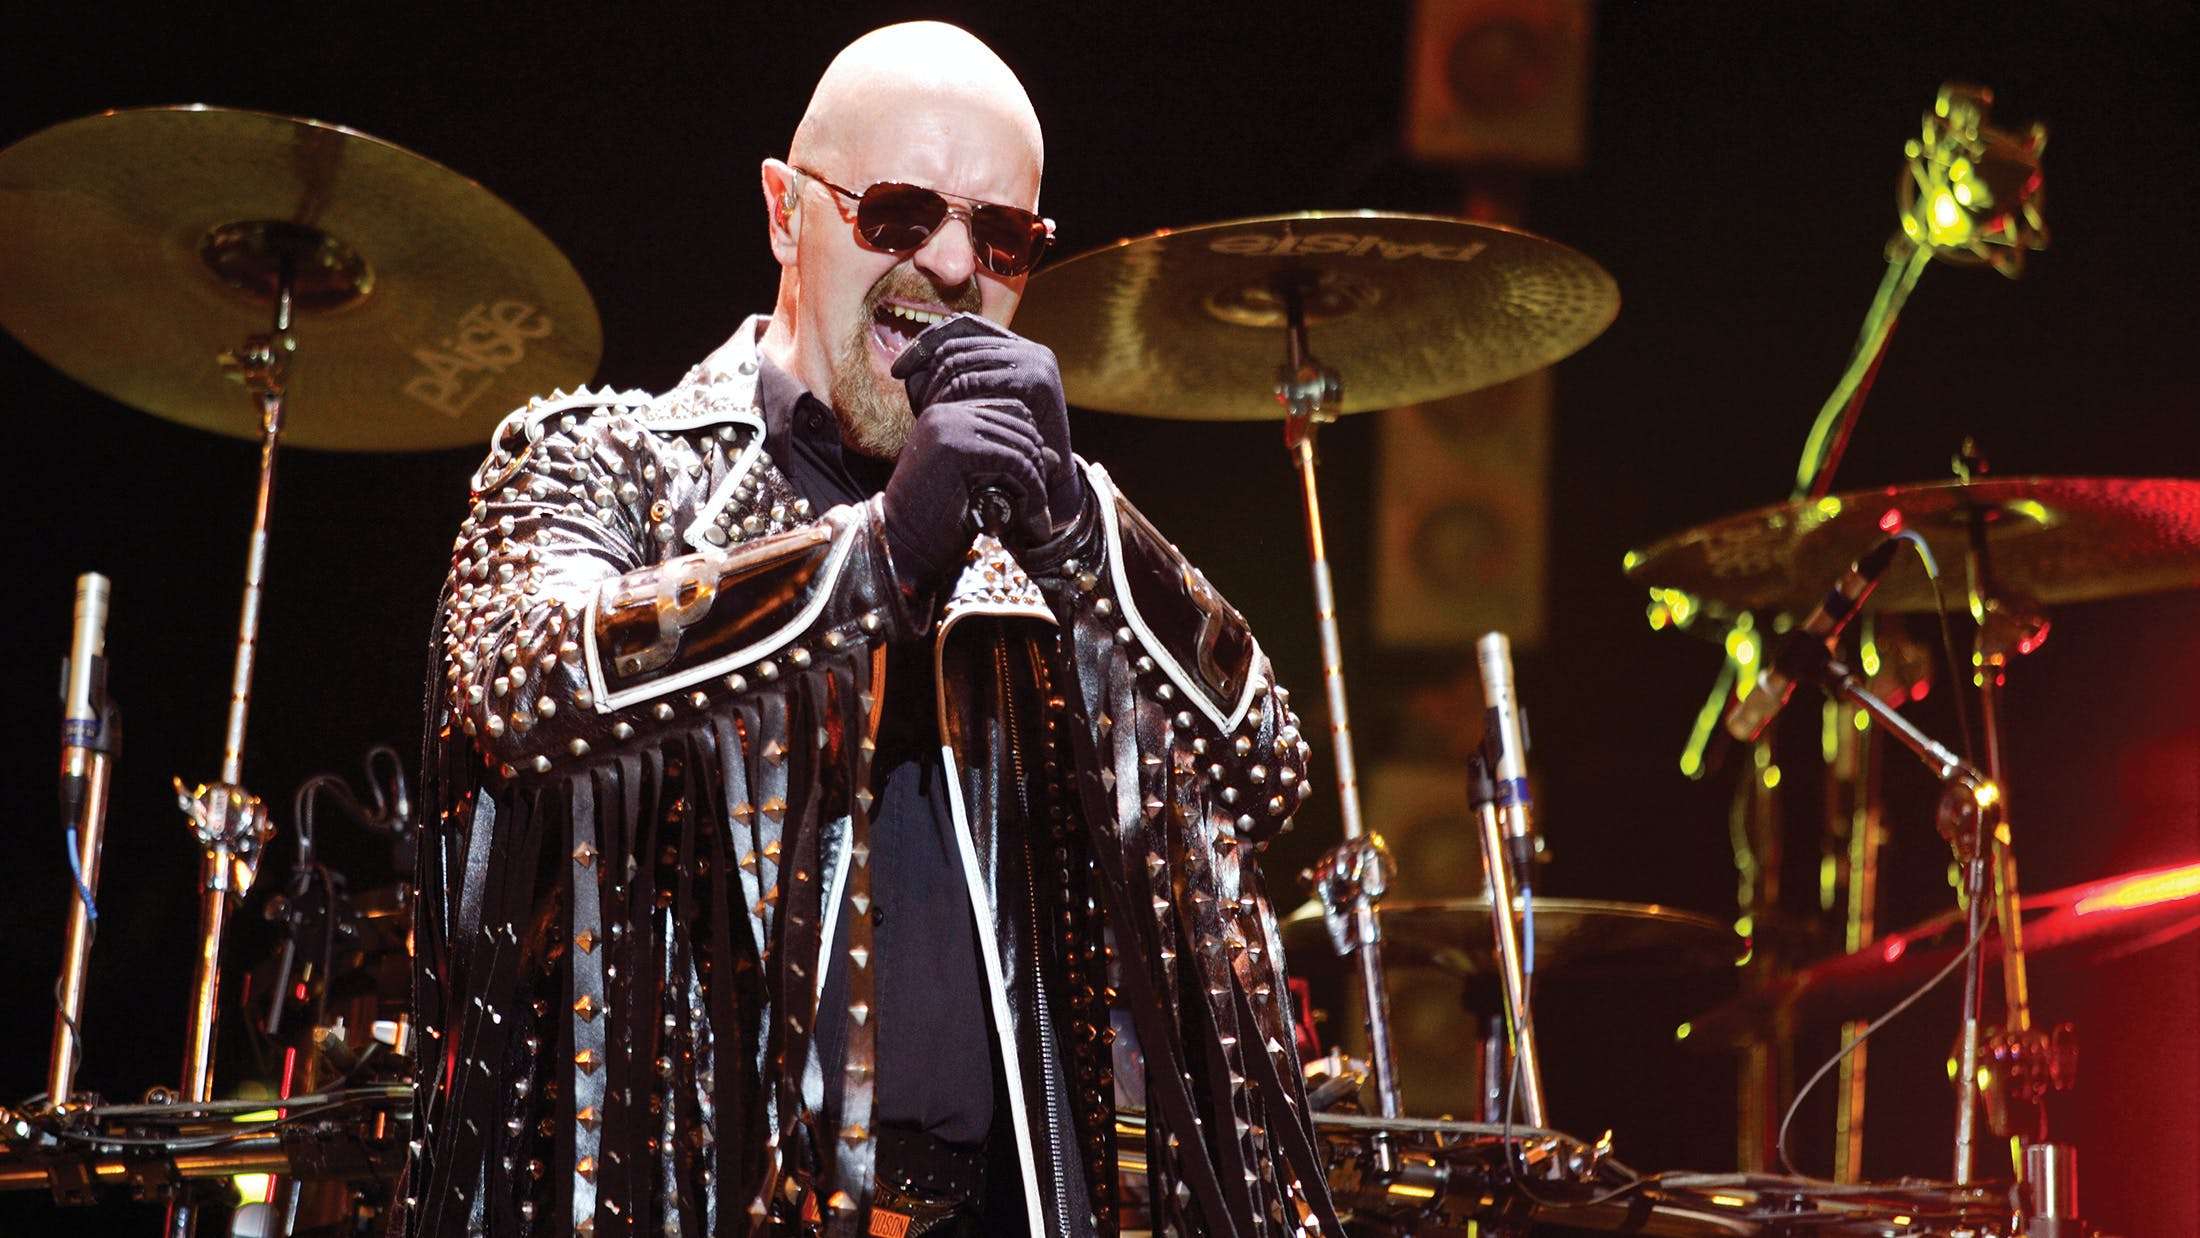 Watch Judas Priest Play Several Classic Songs Live For The First Time